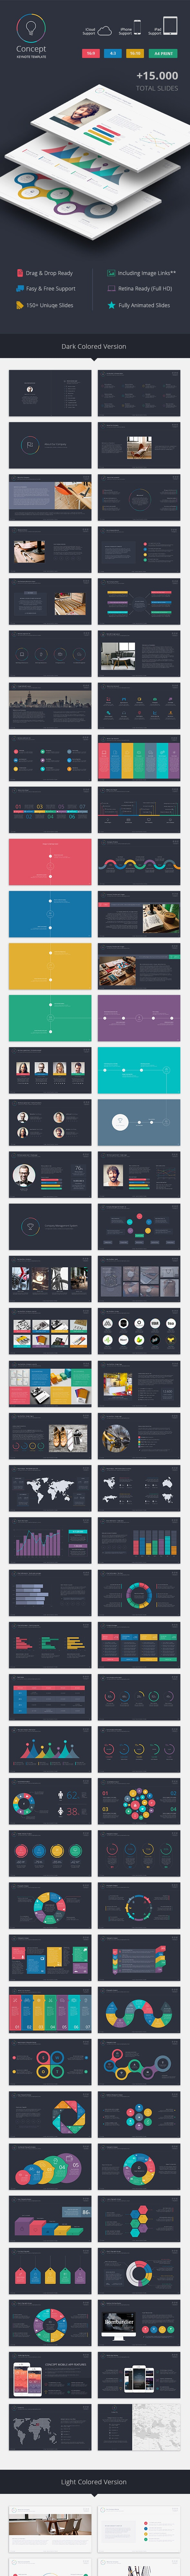 Concept Keynote Template - Creative Keynote Templates